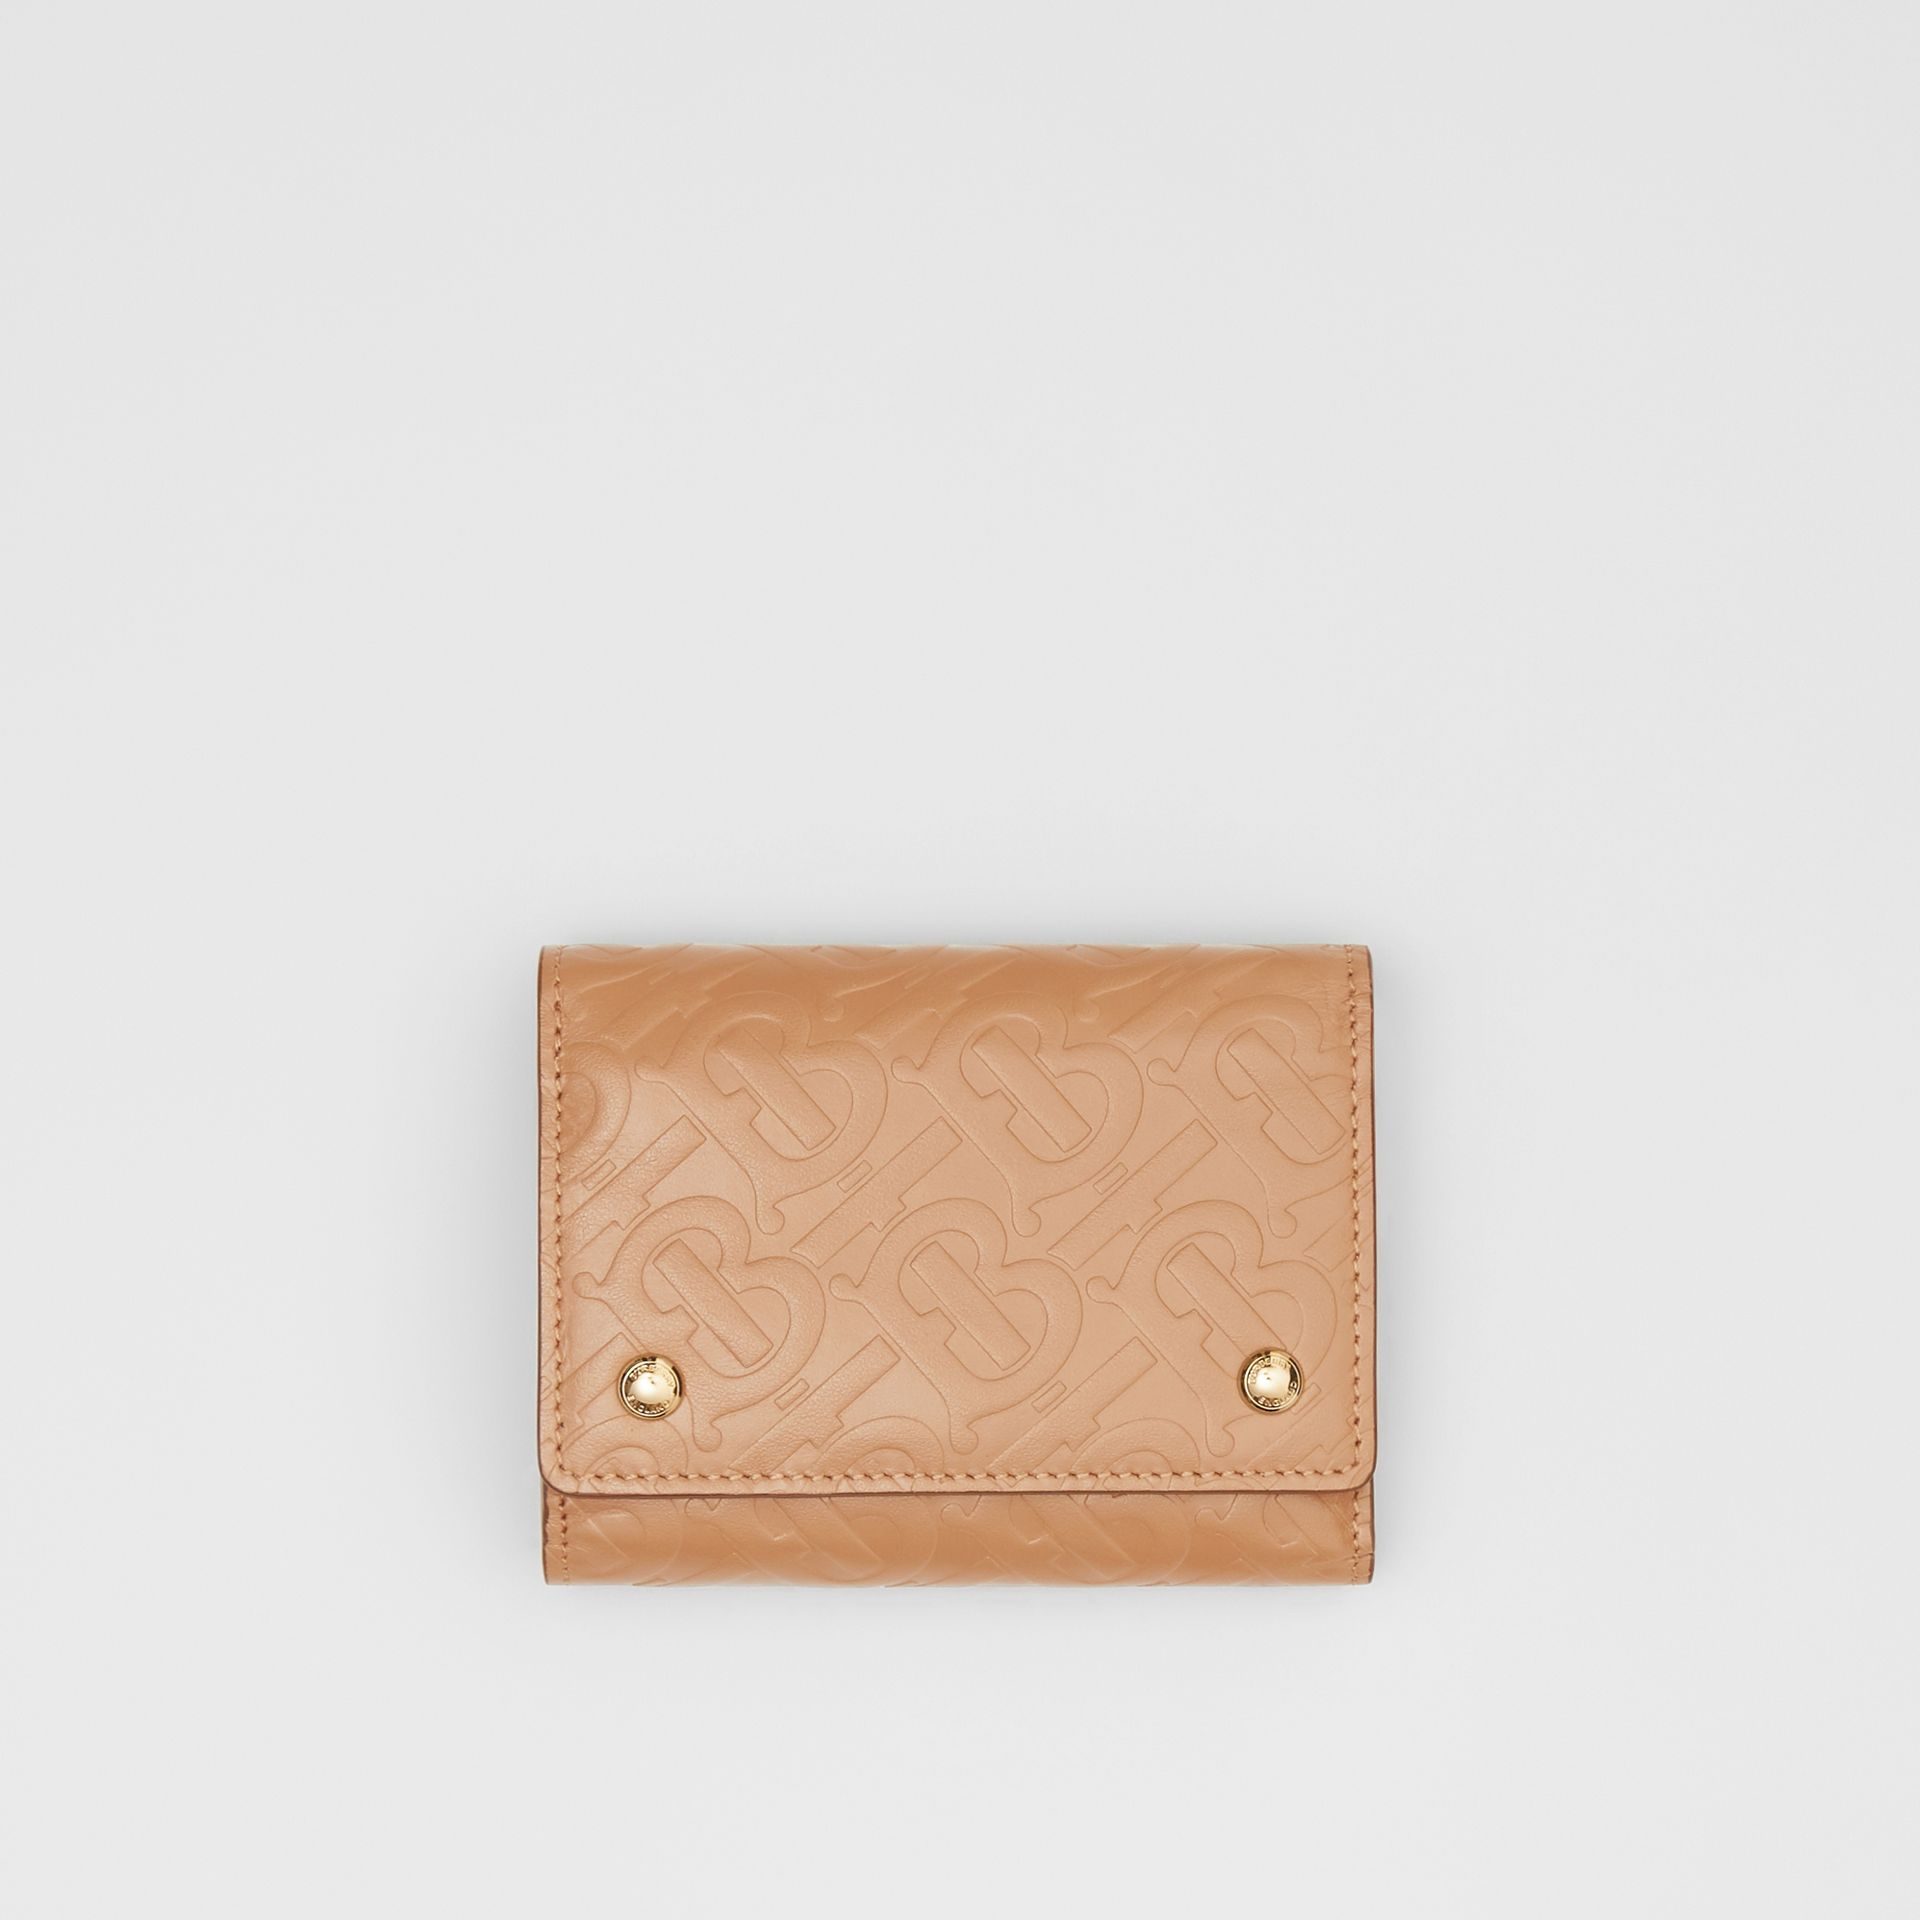 Small Monogram Leather Folding Wallet in Light Camel - Women | Burberry - gallery image 0